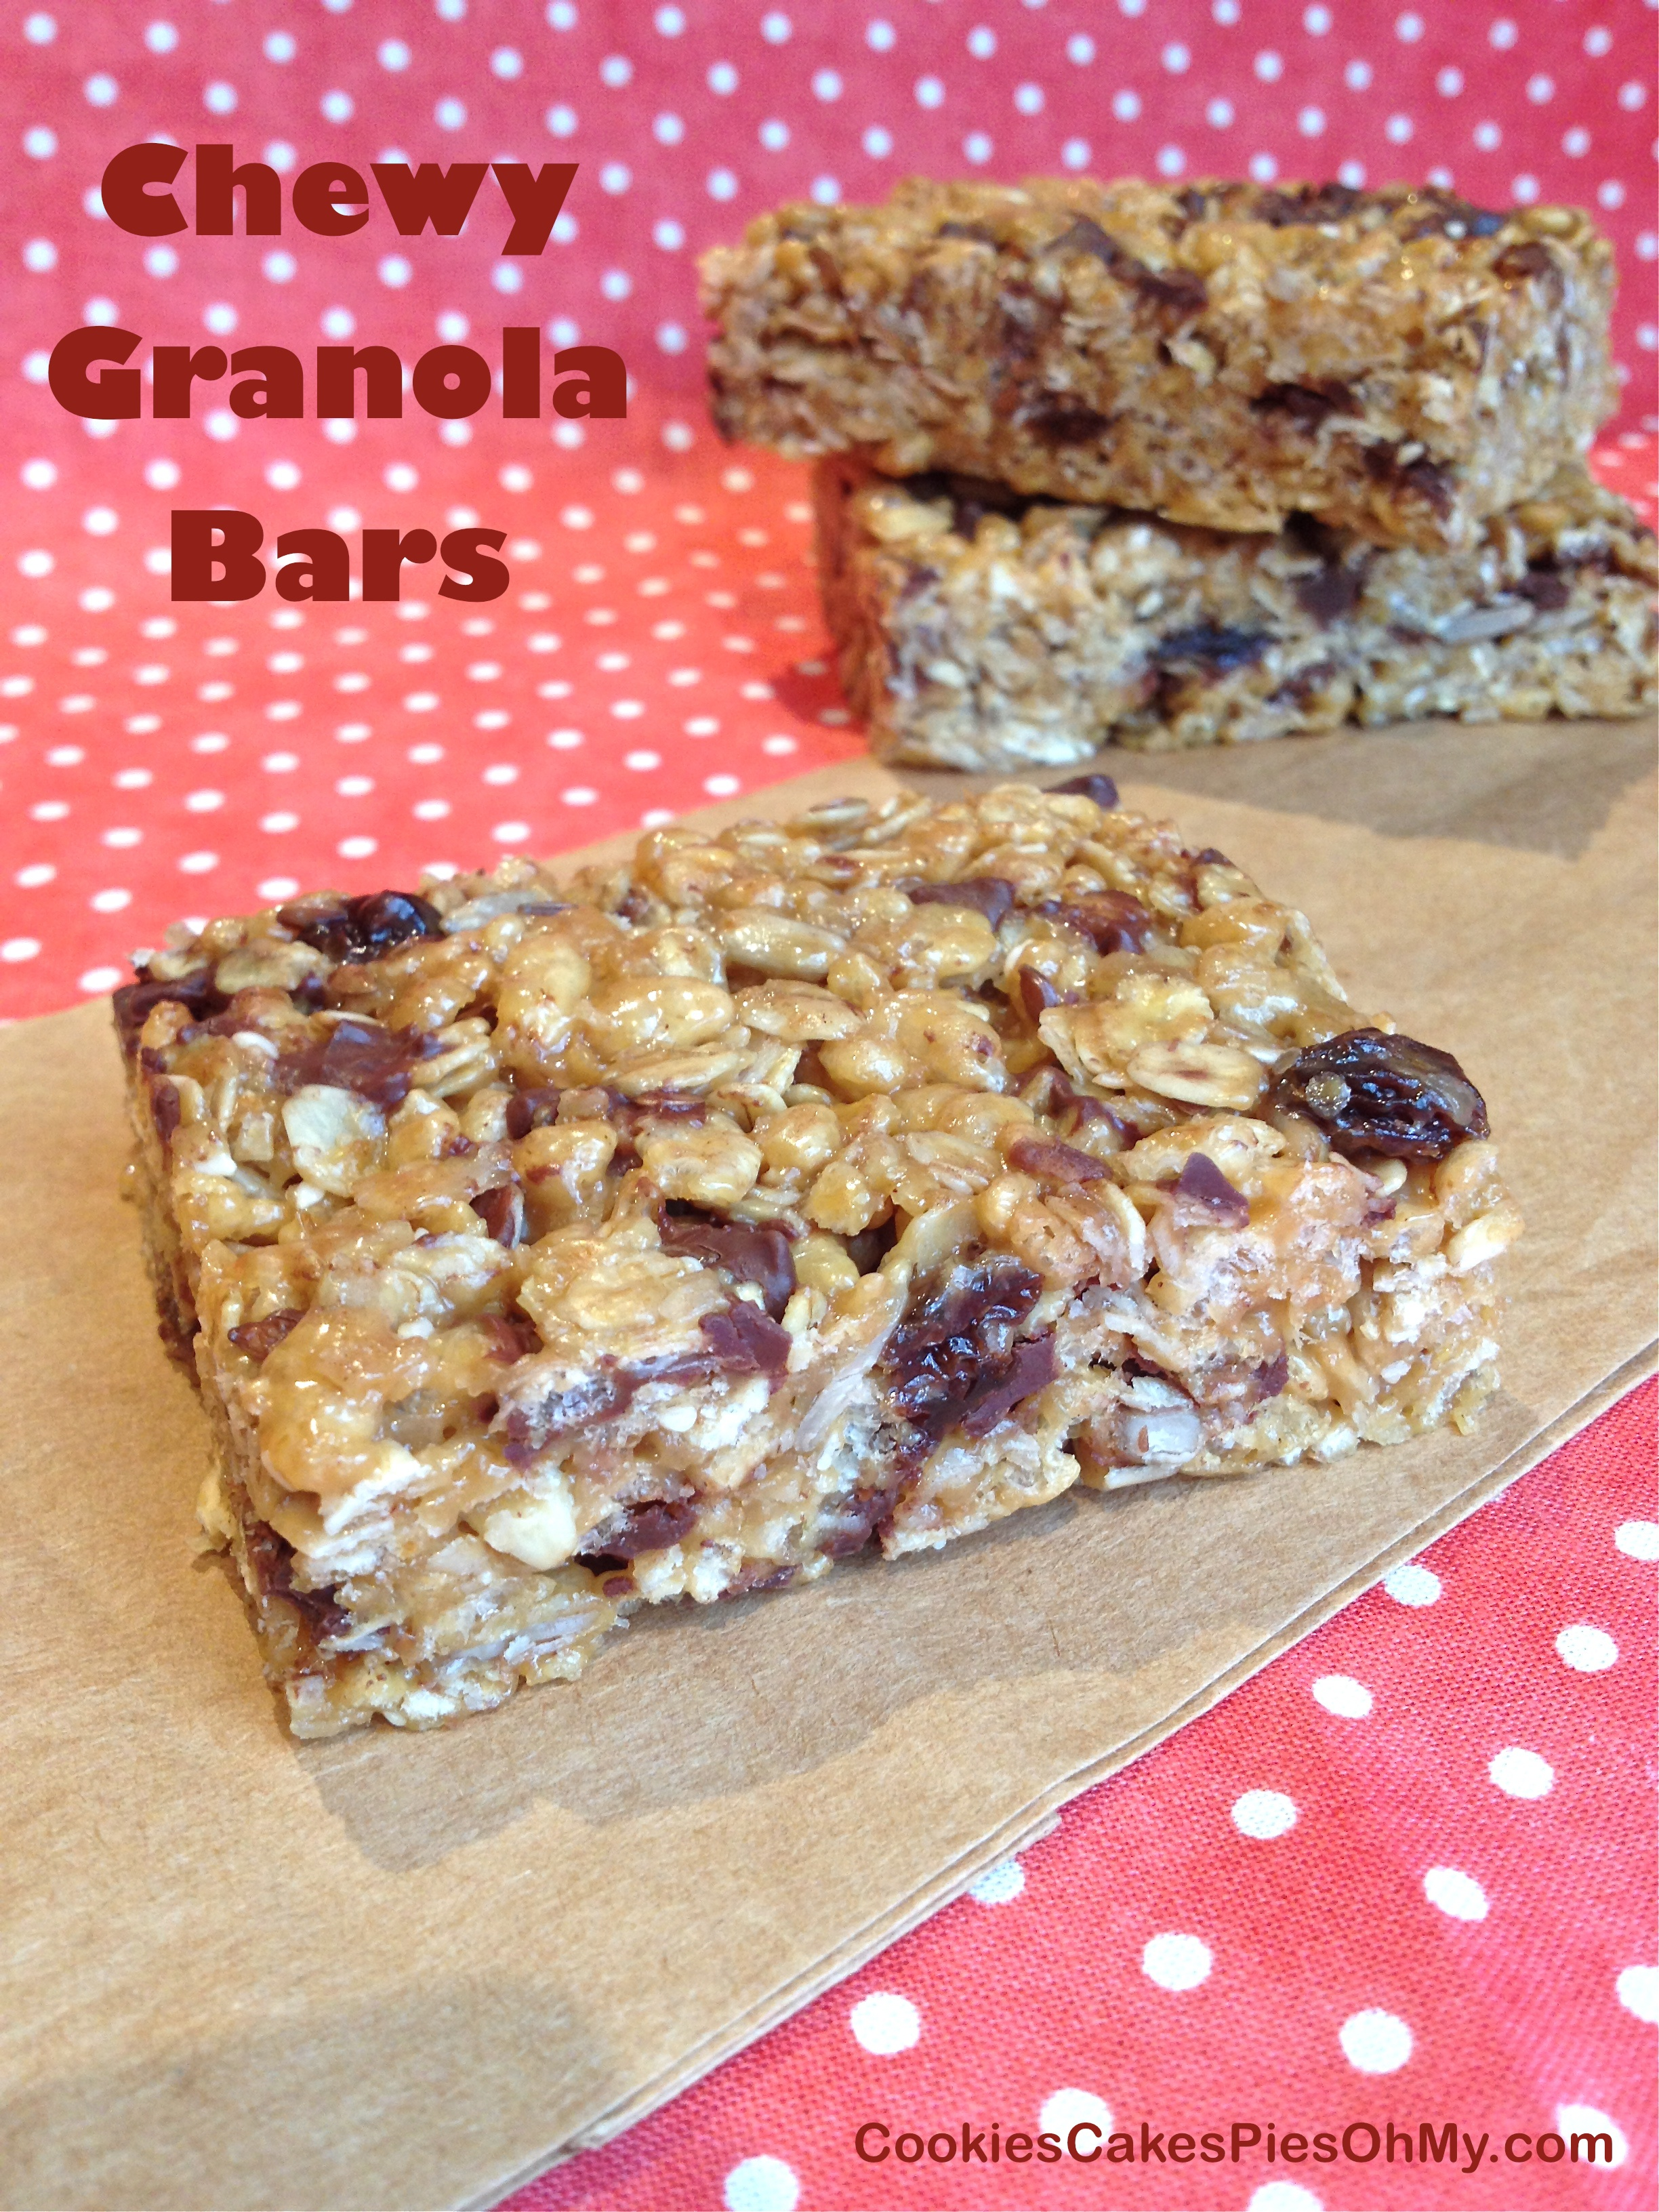 Low Fat Chewy Granola Bars With Pecans Raisins And Chocolate Recipe ...